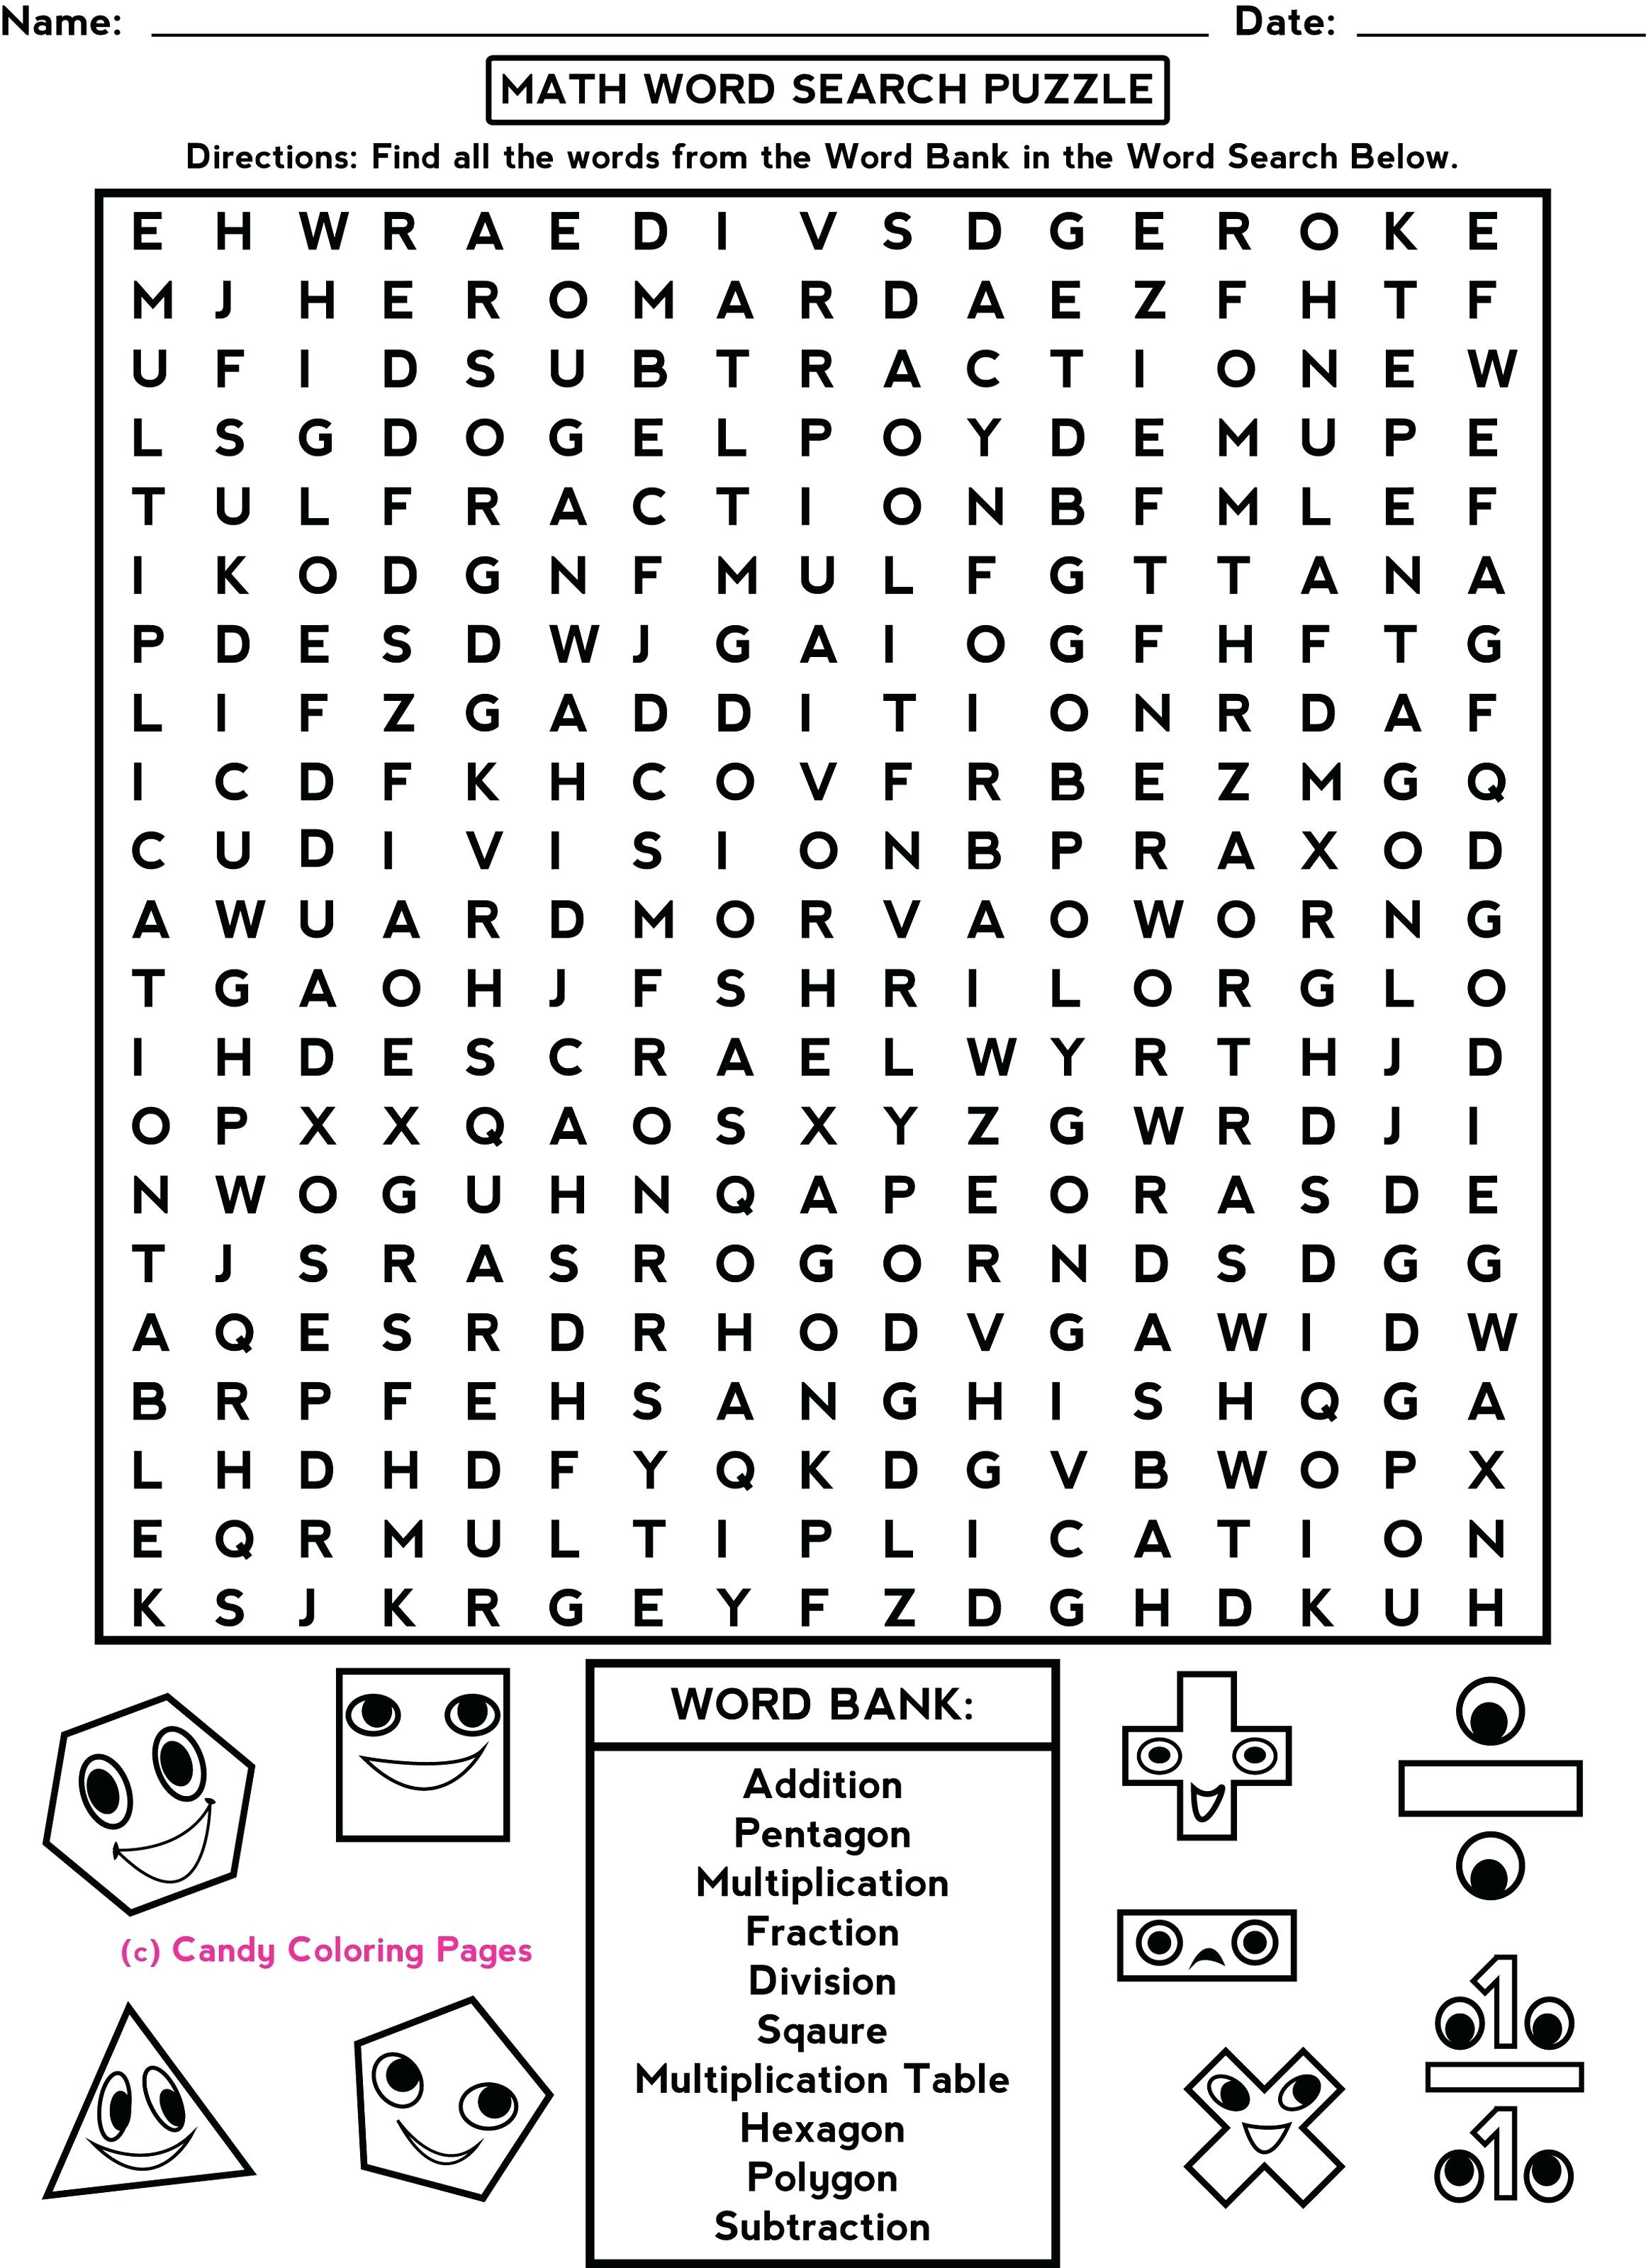 4Th Grade Math Puzzles Fun Worksheets For Middle School Sear On - Printable Toothpick Puzzles